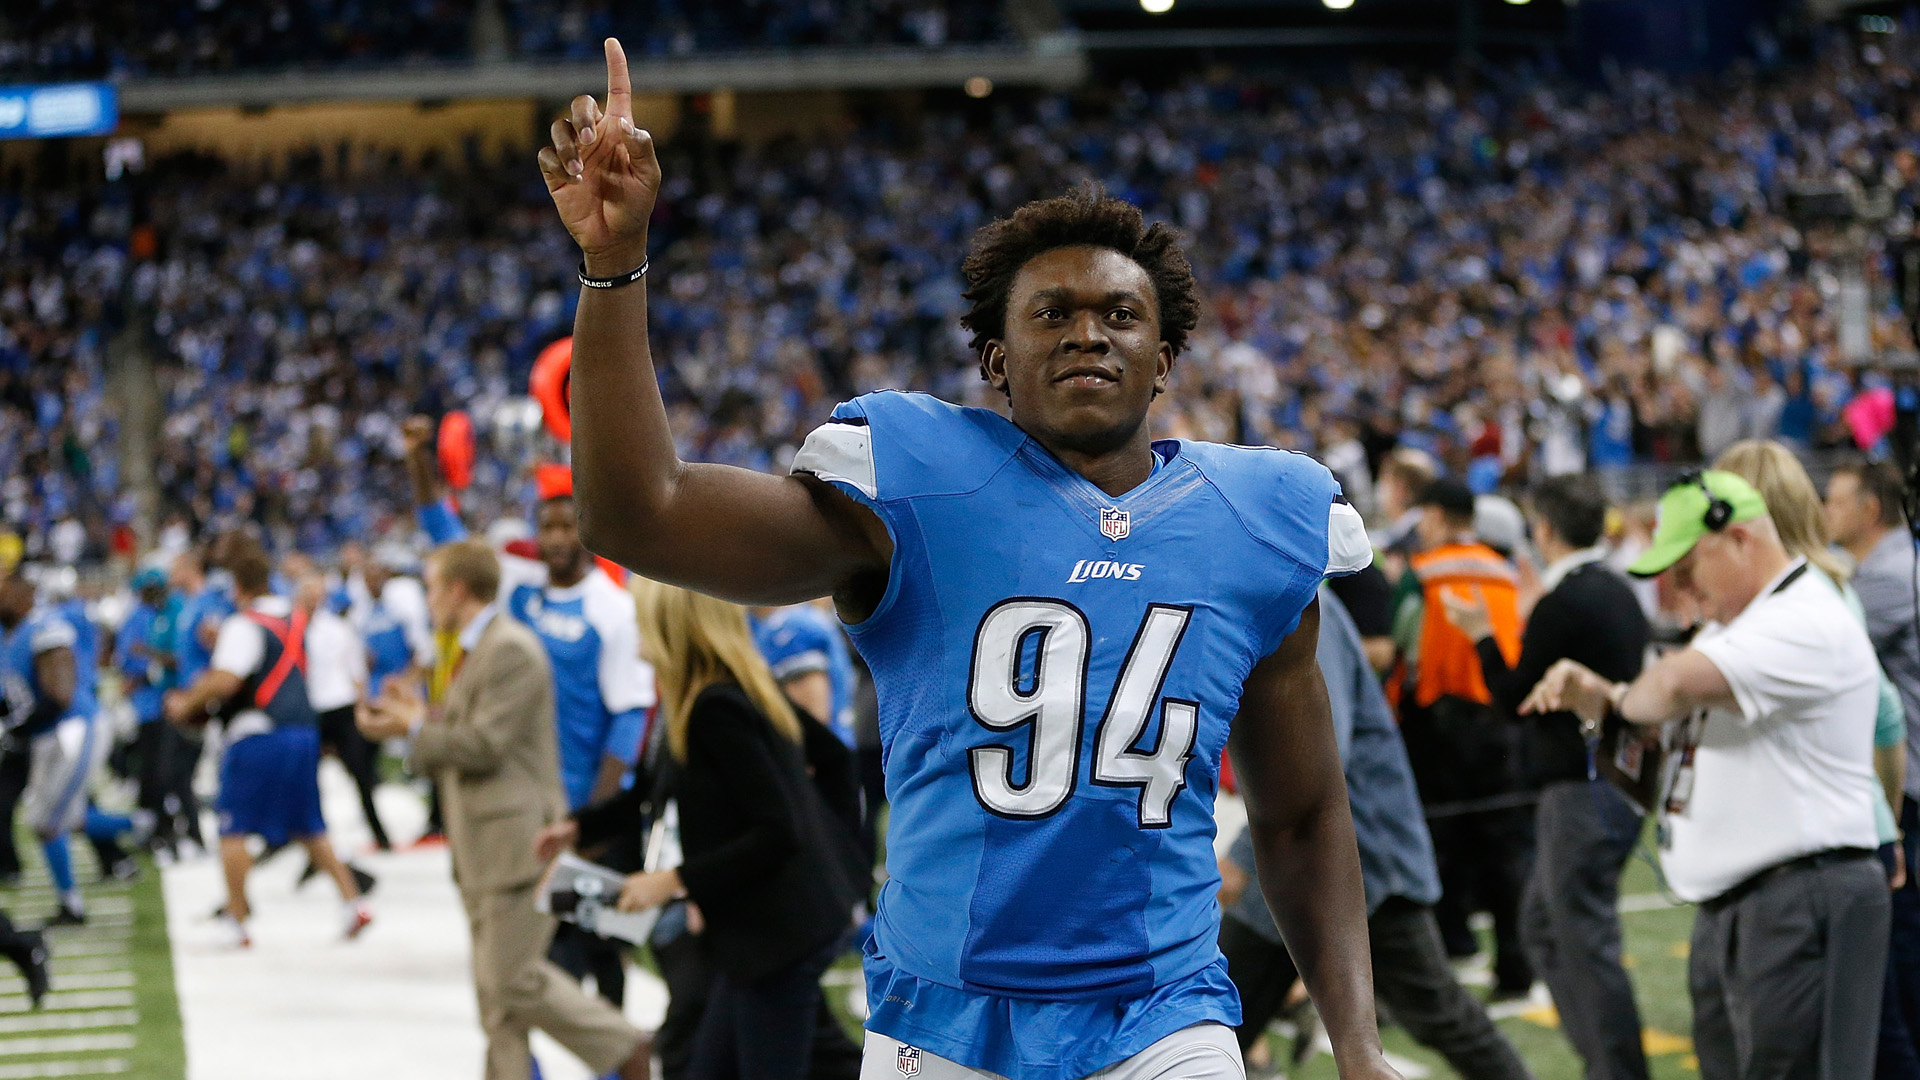 Lions Ziggy Ansah is delivering 94 000 bottles of water to Flint